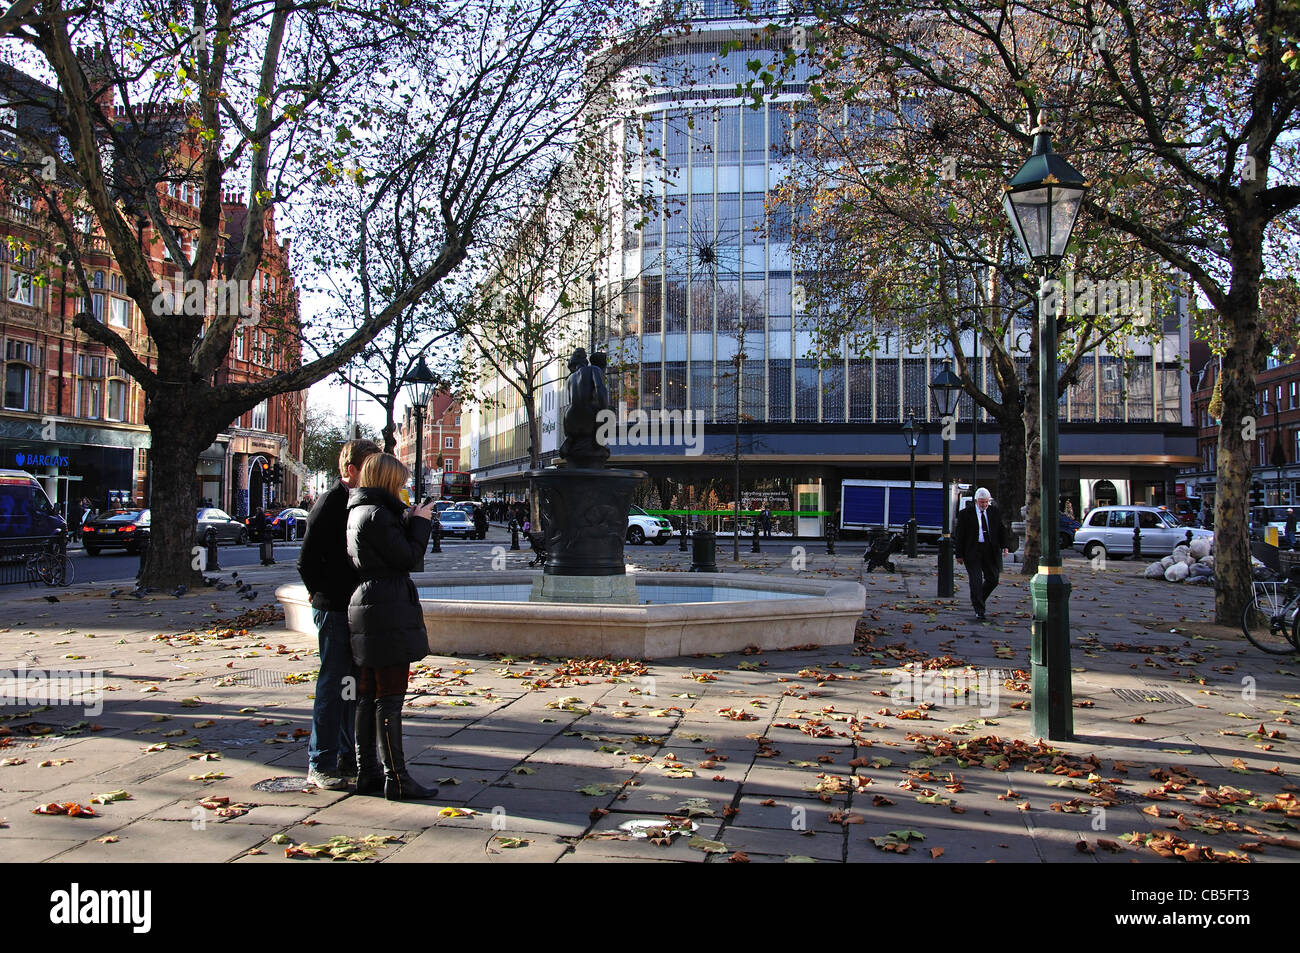 The 'Venus Fountain' in Sloane Square, Chelsea, Royal Borough of Kensington and Chelsea, London, England, - Stock Image